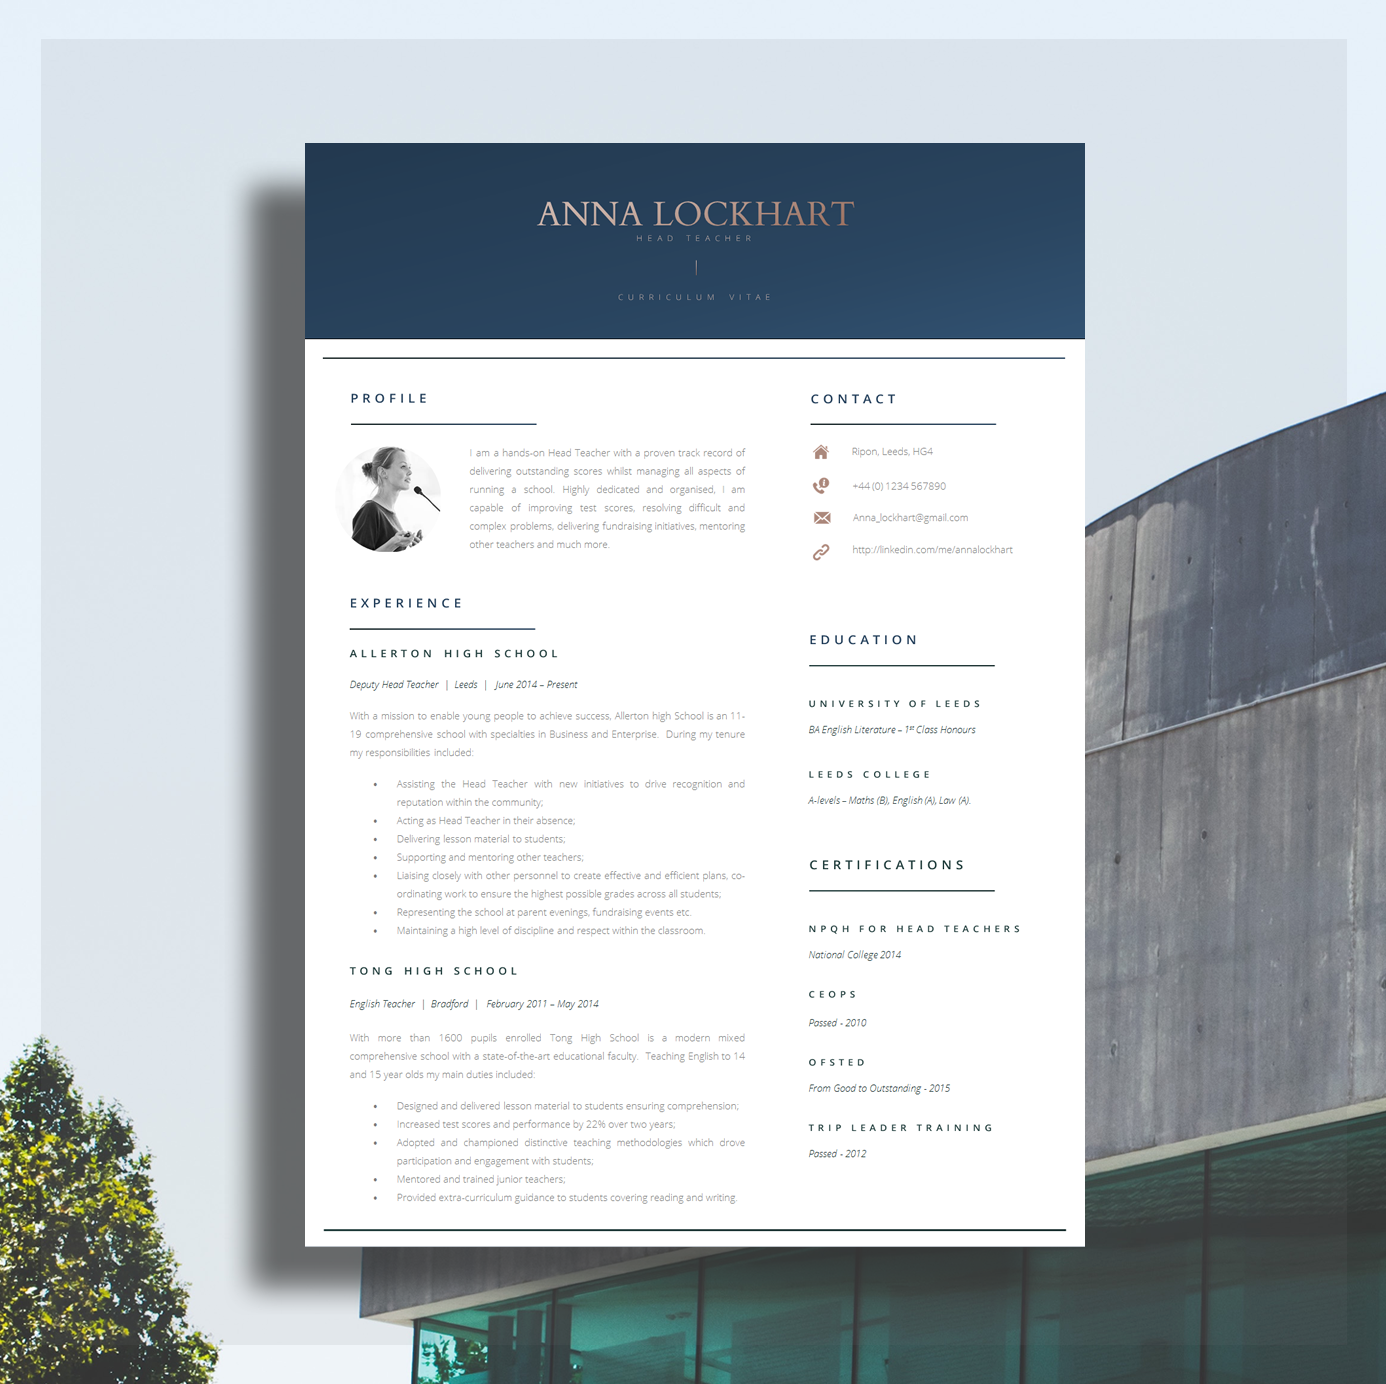 Download this Teacher Resume Template Here.